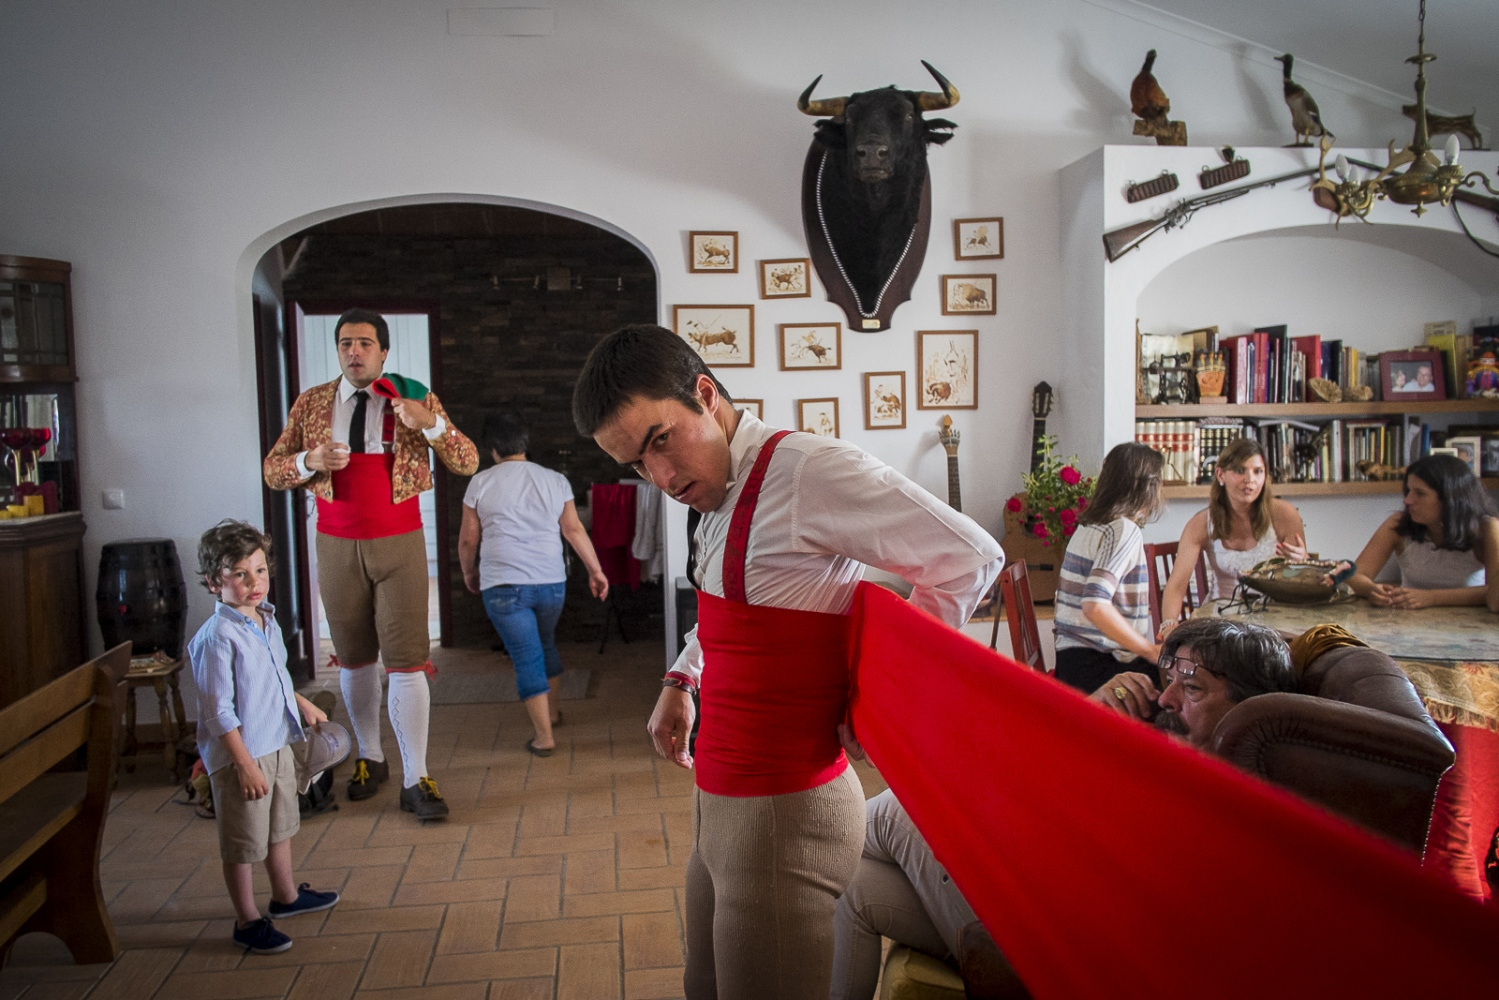 João Madeira, member of the Grupo Forcados Amadores de Évora (GFAE) puts a 5 meters red waistband protection in the house of an old member of the group before the bullfight. The waistband helps to protect their internal organs from the attack of the bull.